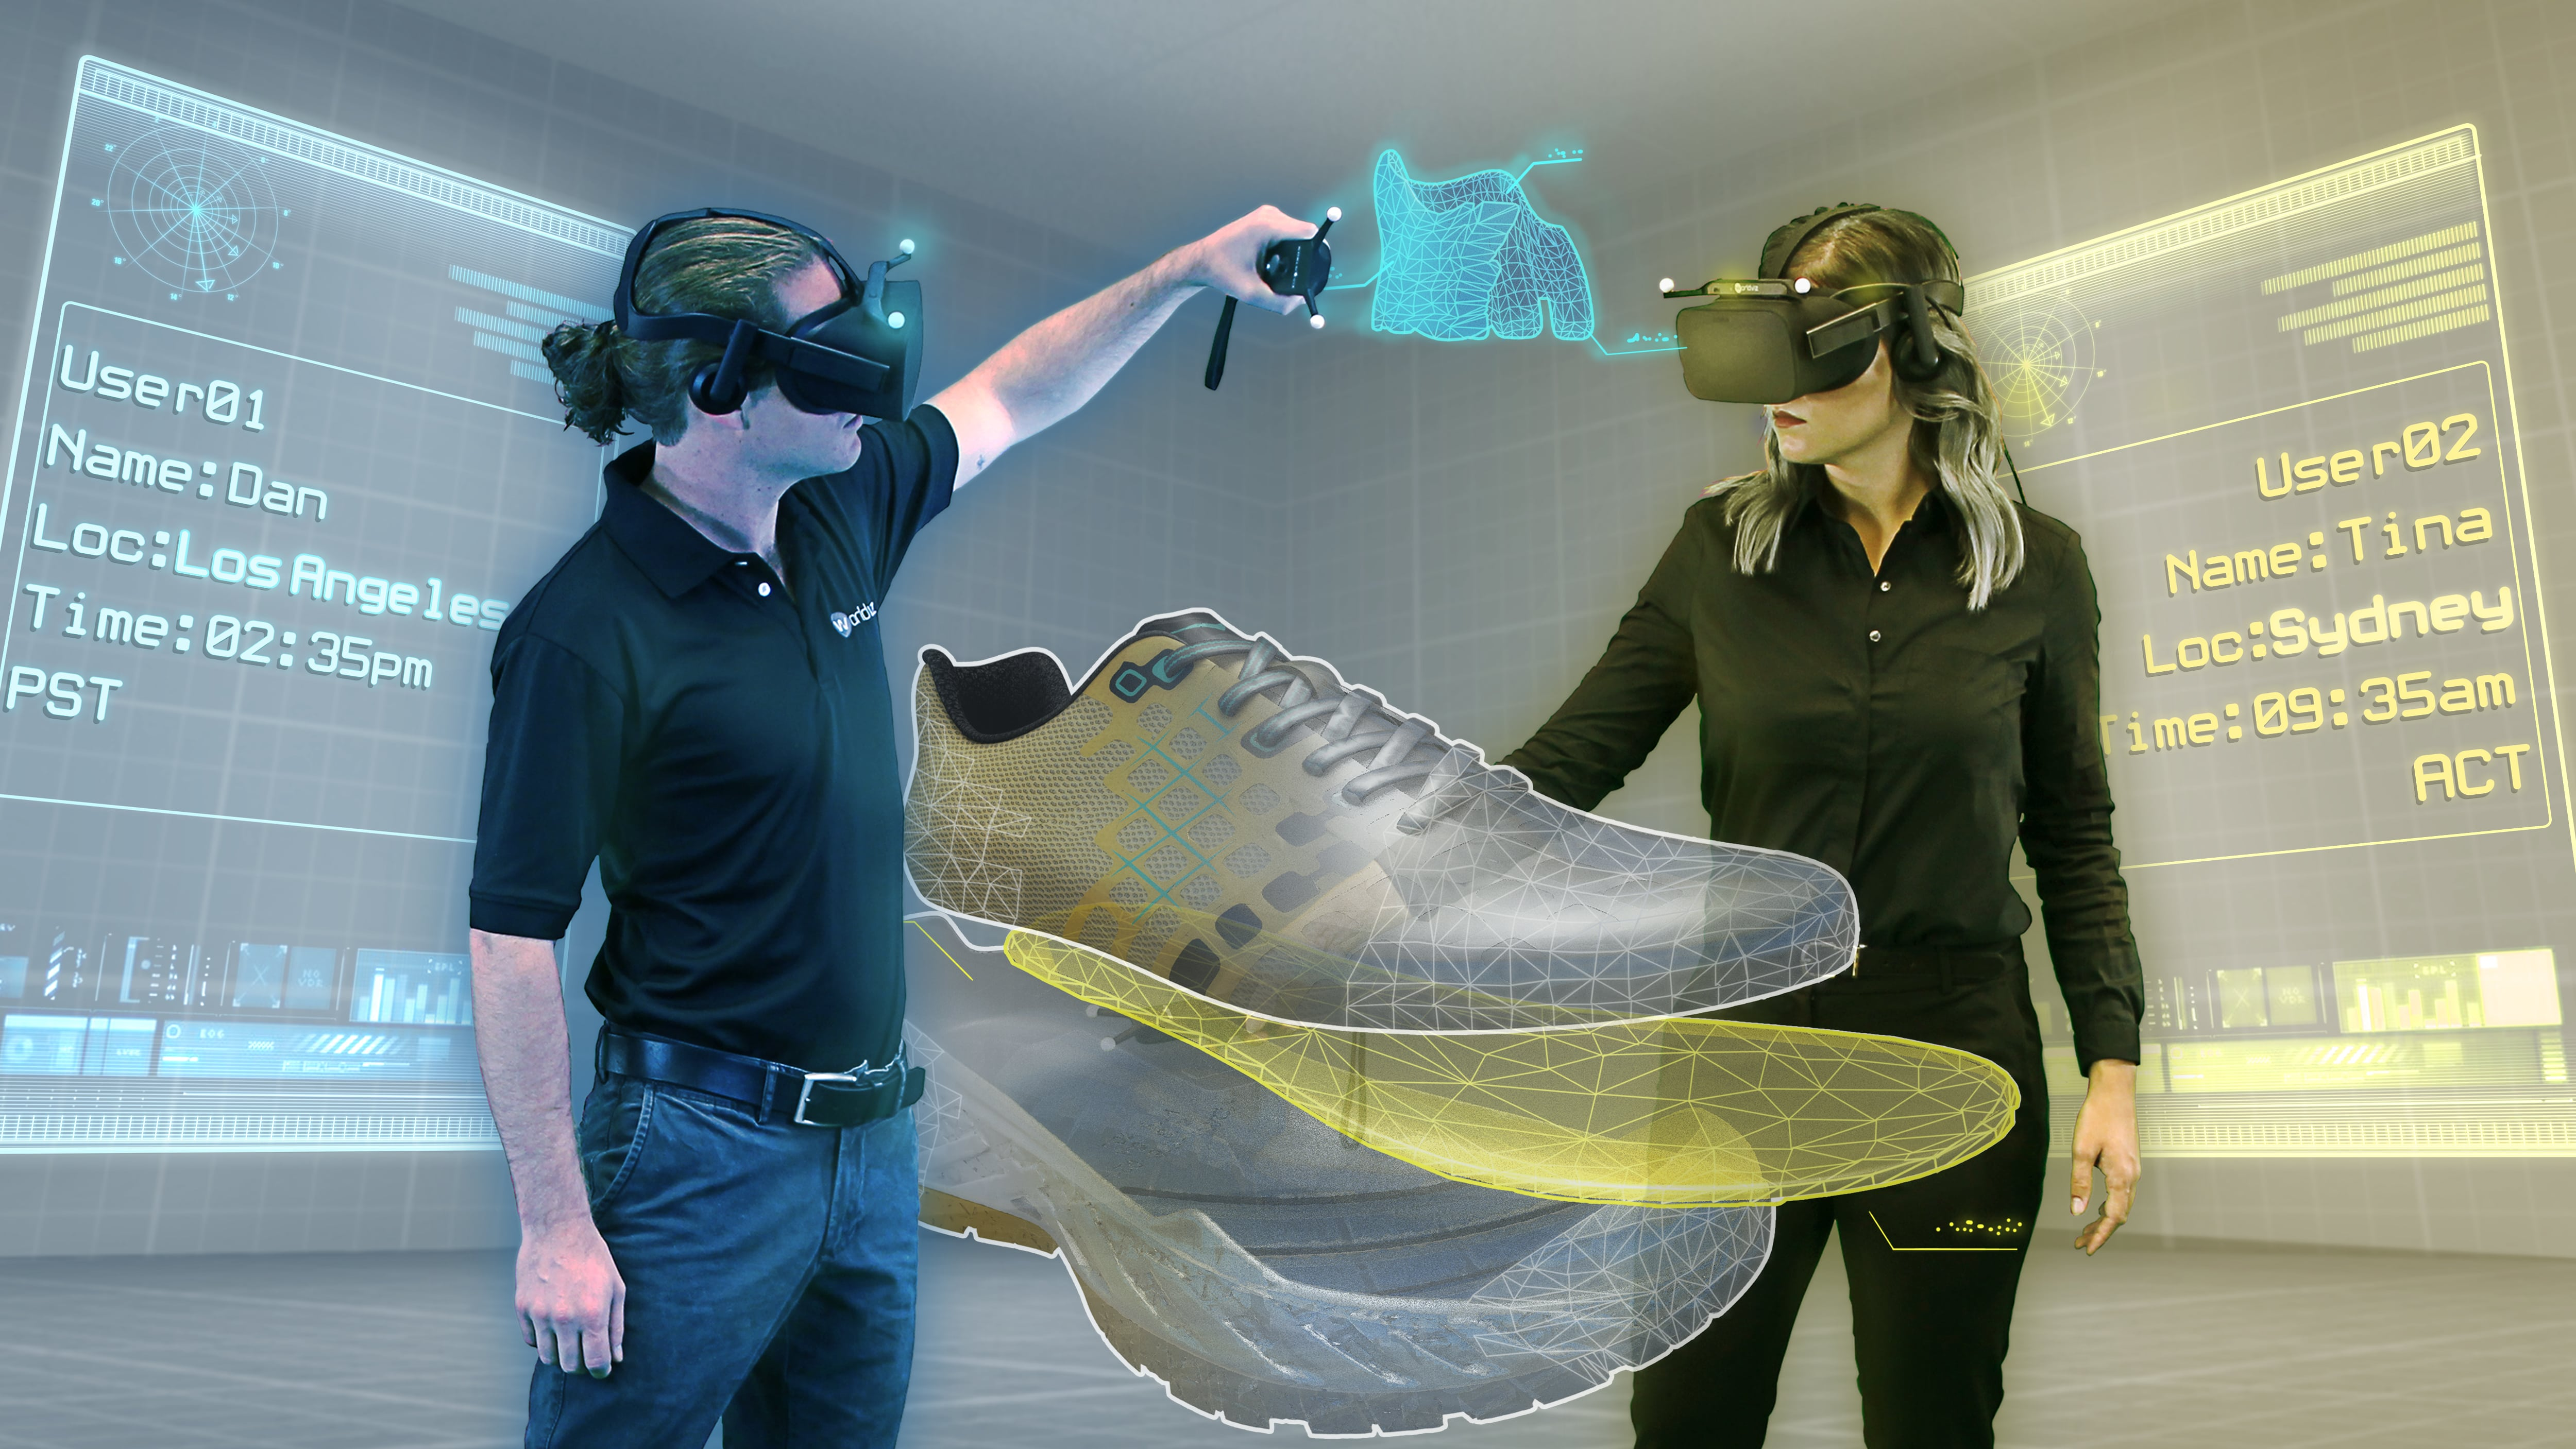 cf28273427d Footwear Company Deckers Uses VR to Reduce Travel and Drive ...